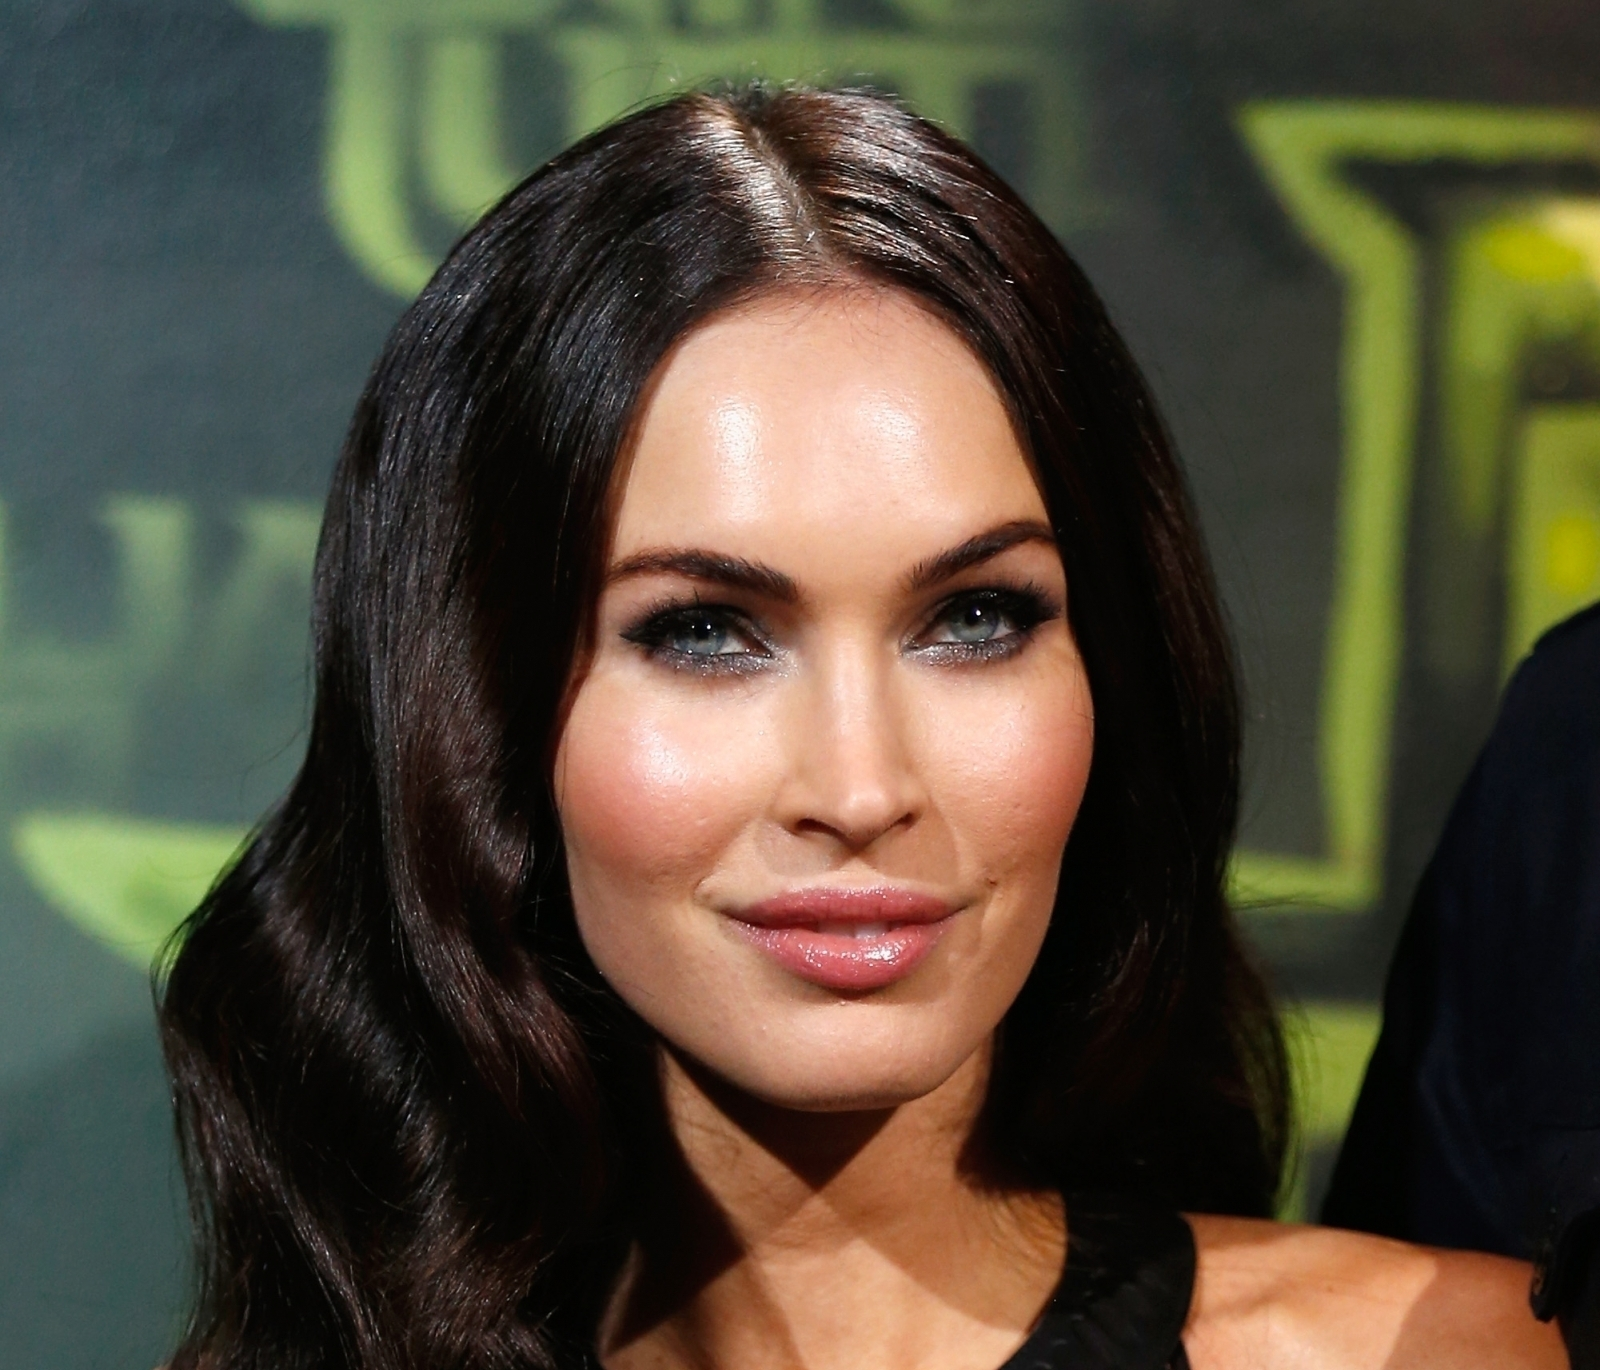 fans left heartbroken as megan fox shares terribly dark hollywood